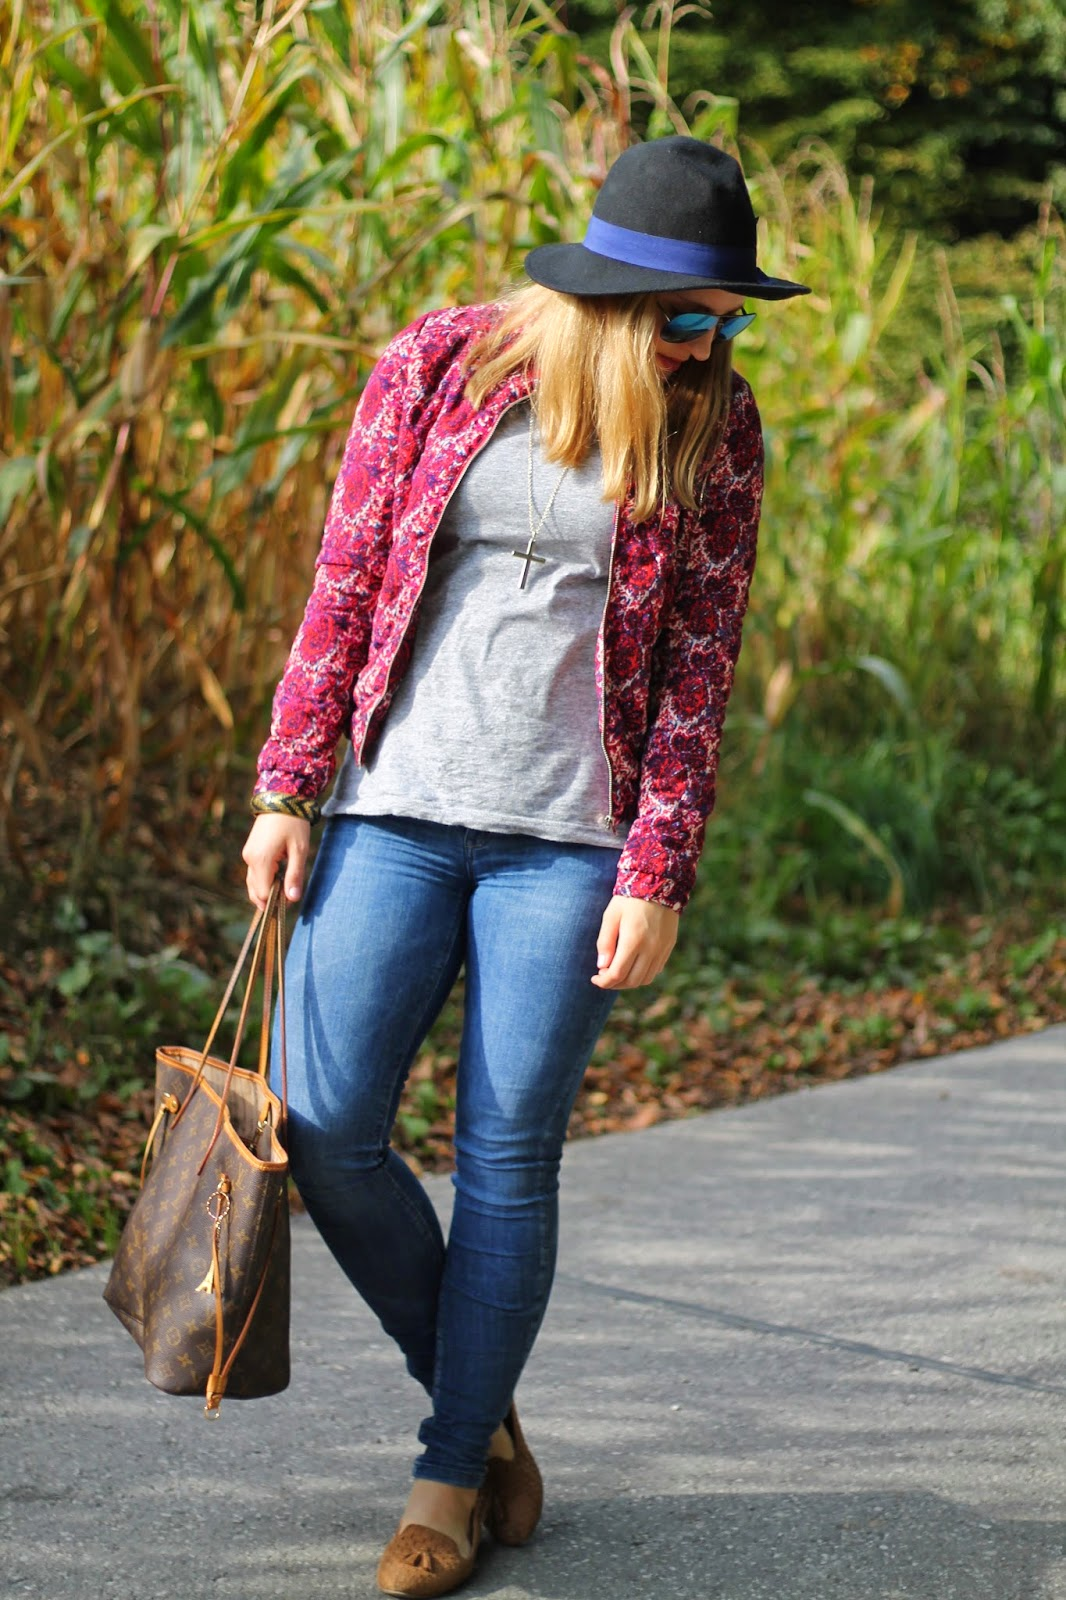 Fashionblogger Austria / Österreich / Deutsch / German / Kärnten / Carinthia / Klagenfurt / Köttmannsdorf / Spring Look /  Fashionblog Kärnten / Classy / Edgy / Autumn / Autumn Style 2014 / Autumn Look / Fashionista Look / Bomber Jacket Oasap Flowers / Hat Forever21 Black Blue / Simple Grey Shirt H&M / Zara Body Curve Jeans / Louis Vuitton Neverfull Monogramm Canvas / Mirrored Sunglasses / Loafers Beige Braun Forever 21/